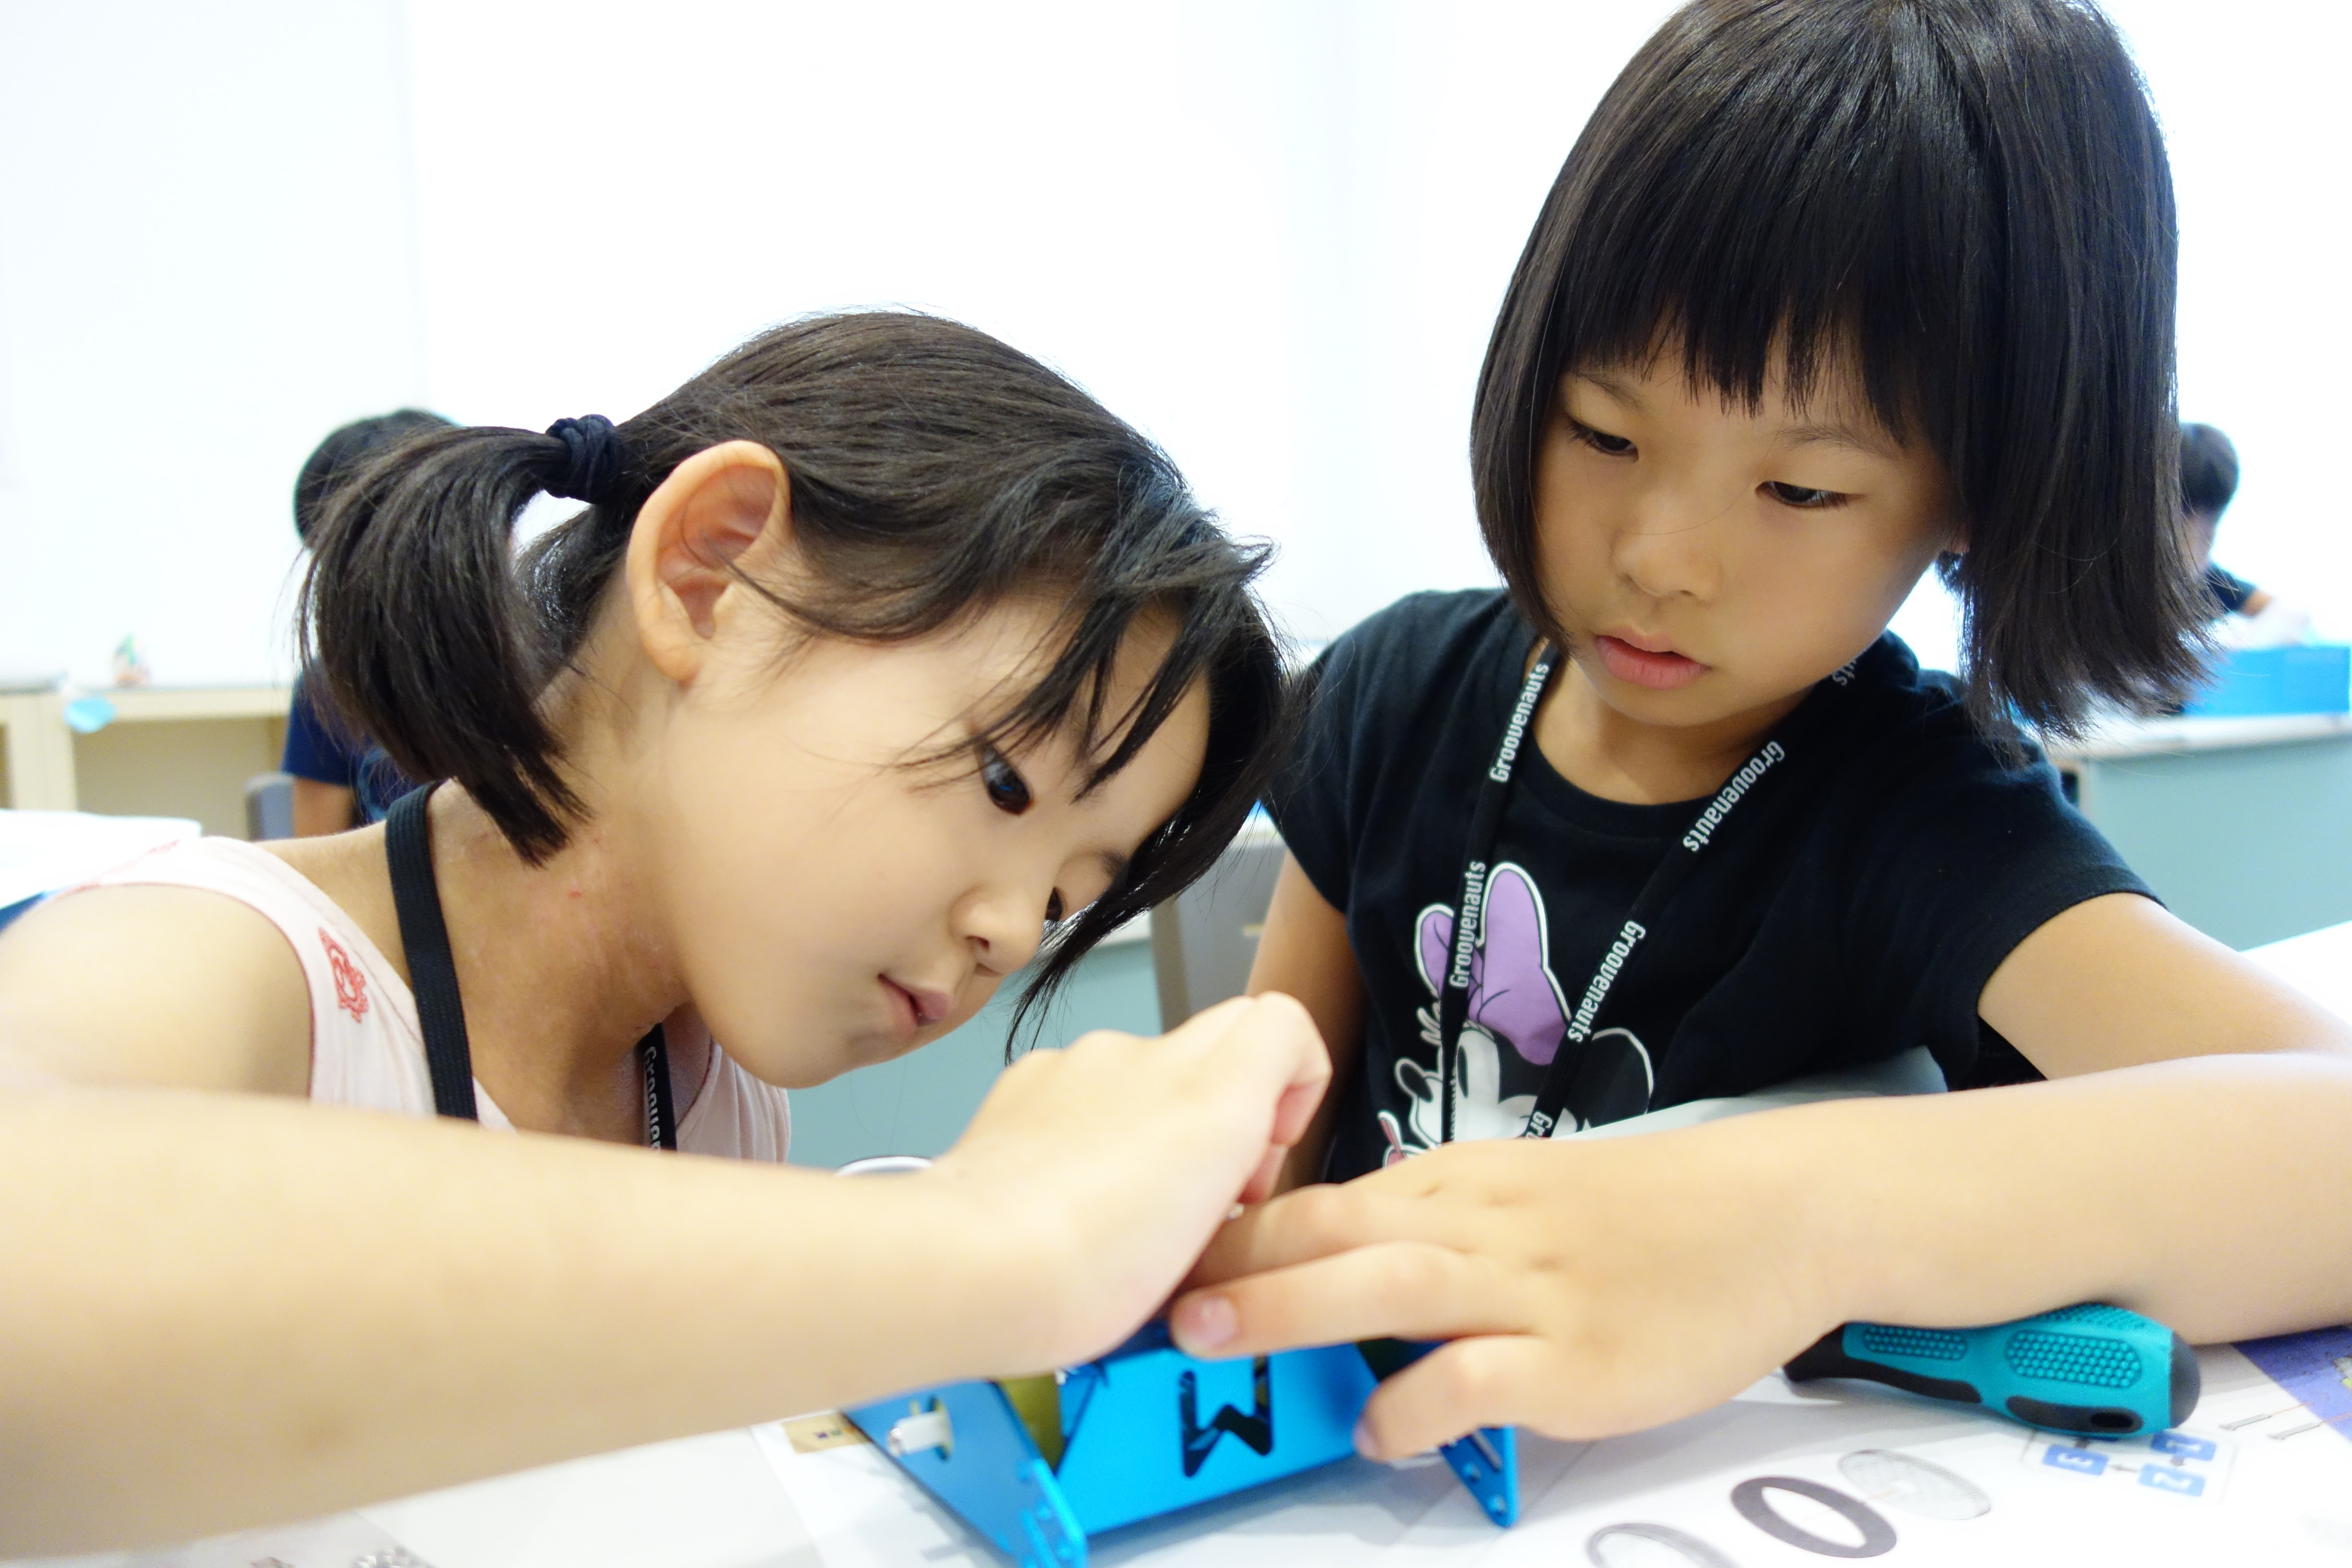 Summer School 2016 Report #2: Building and Programming Robots!